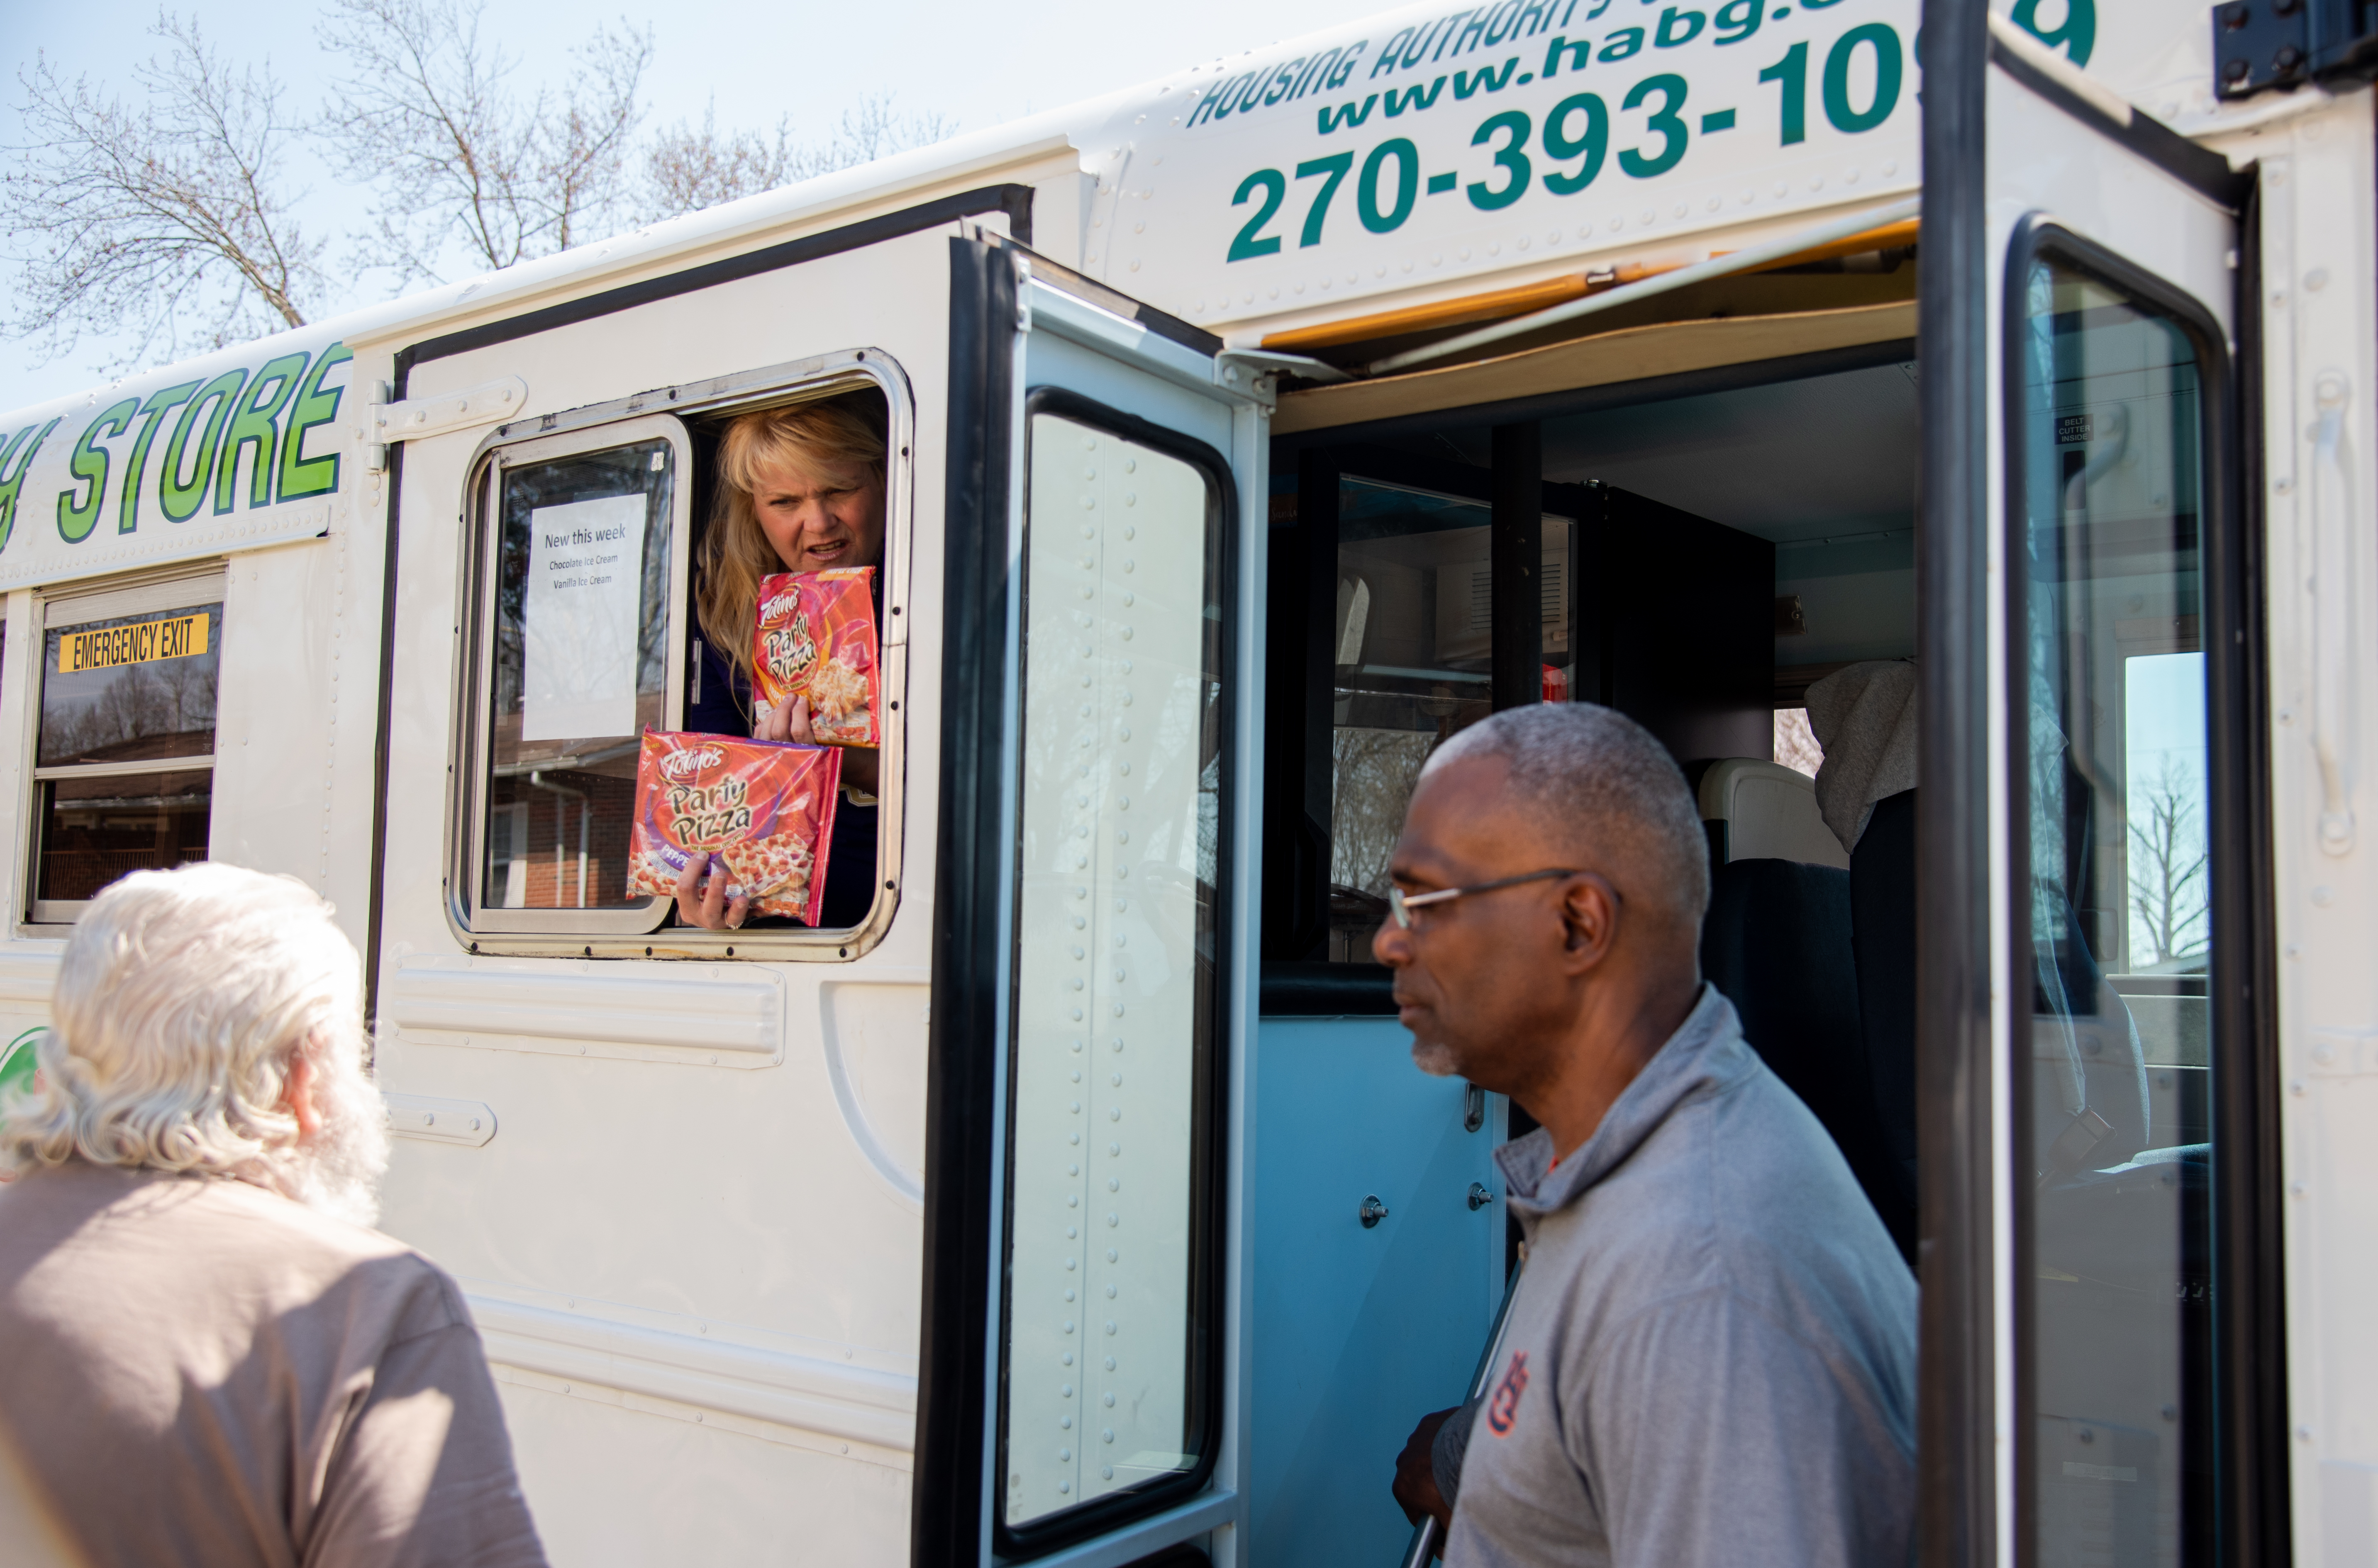 Lori Richey shows Mobile Grocery Bus customers the two kinds of frozen pizza the bus offers, a new edition at that time when the bus was still establishing its customer base in 2019.